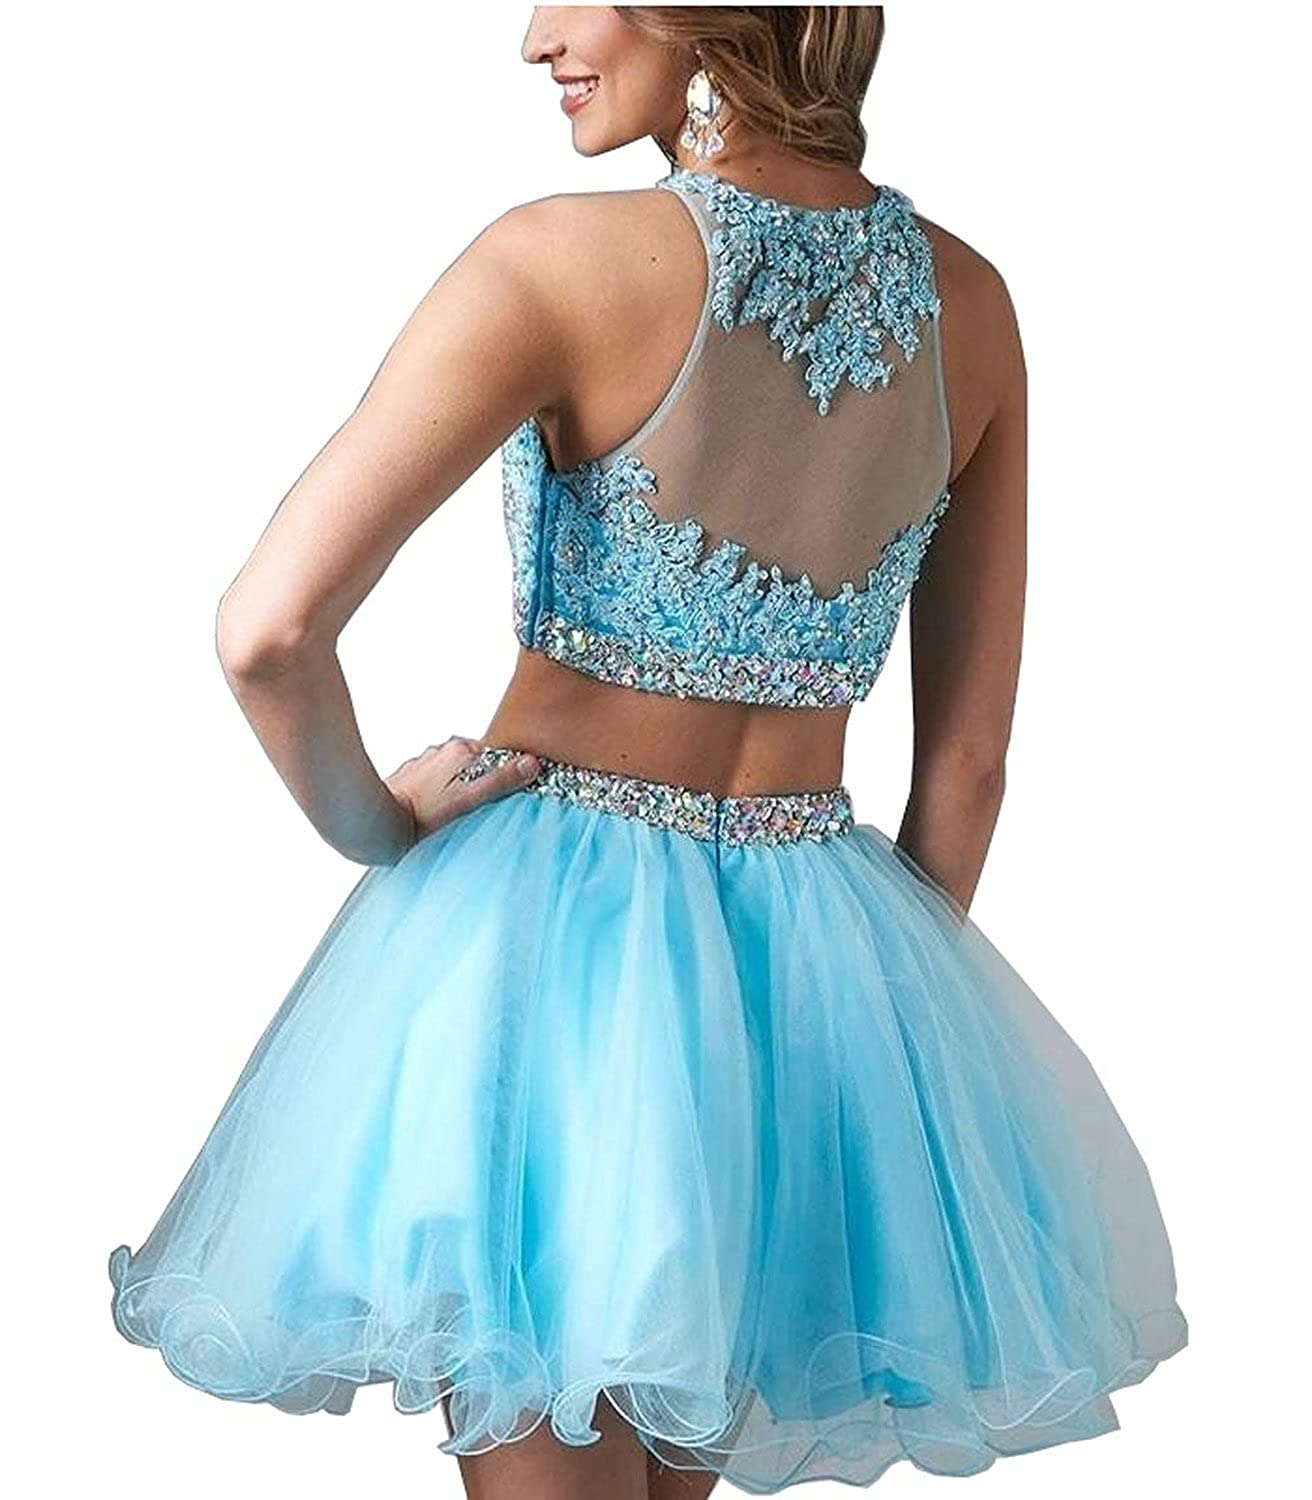 Lisa Lace Two Piece Homecoming Beading Short Prom Dresses For Teens LS25 at Amazon Womens Clothing store: